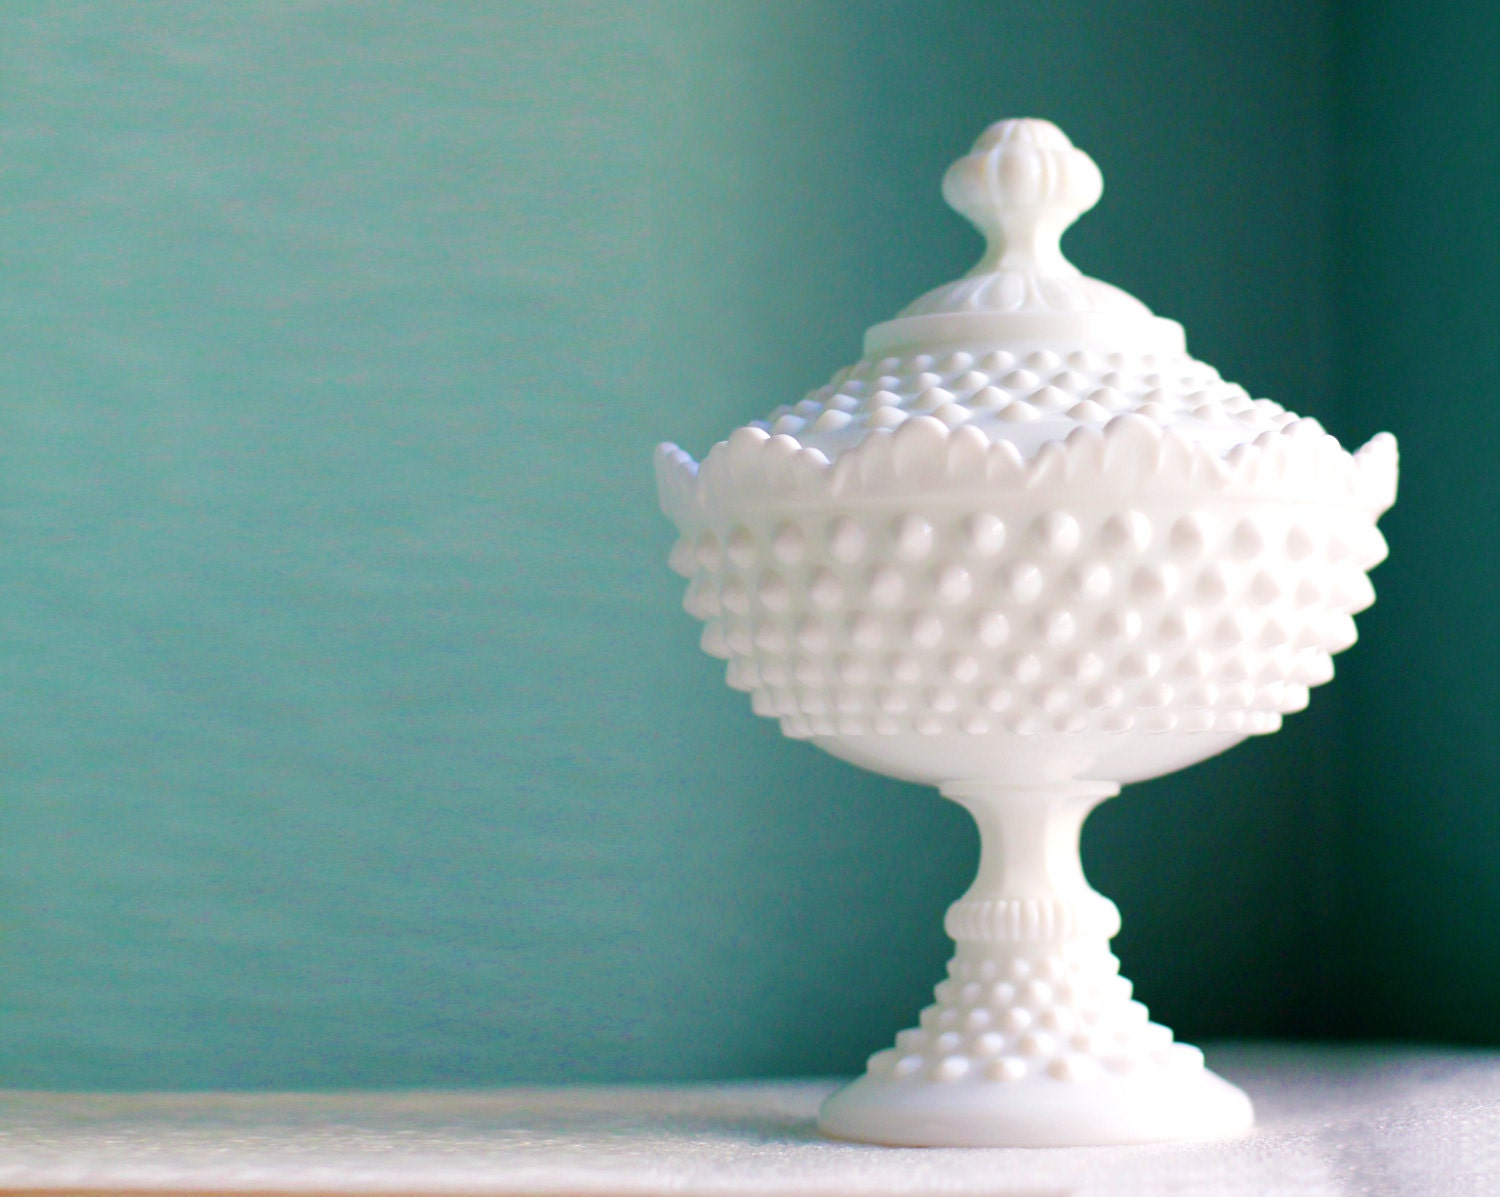 Milk glass compote or candy dish wedding centerpiece